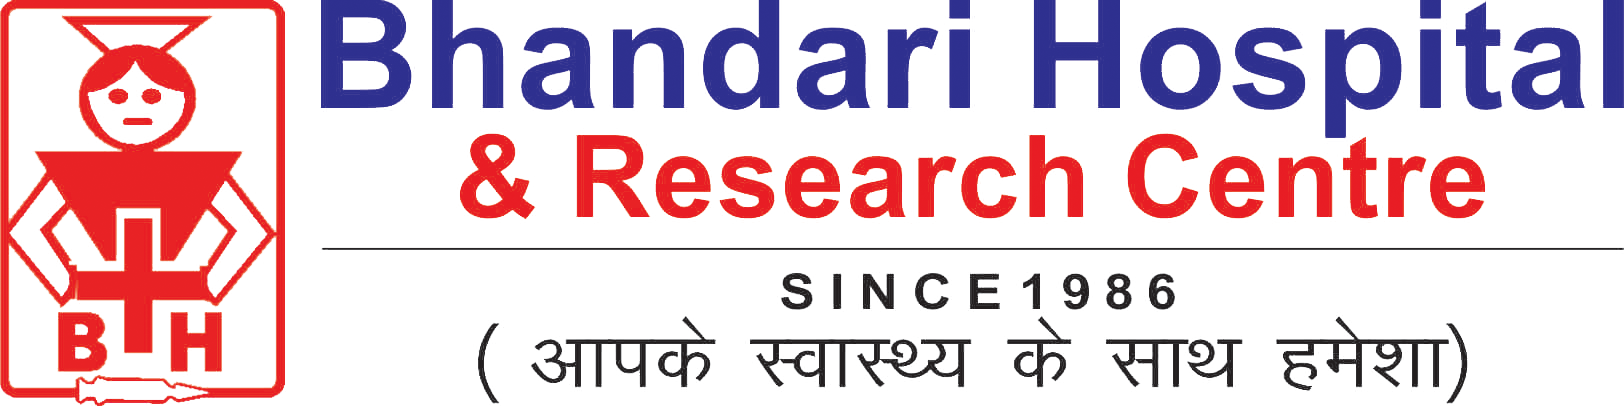 Bhandari Hospital & Research Centre logo